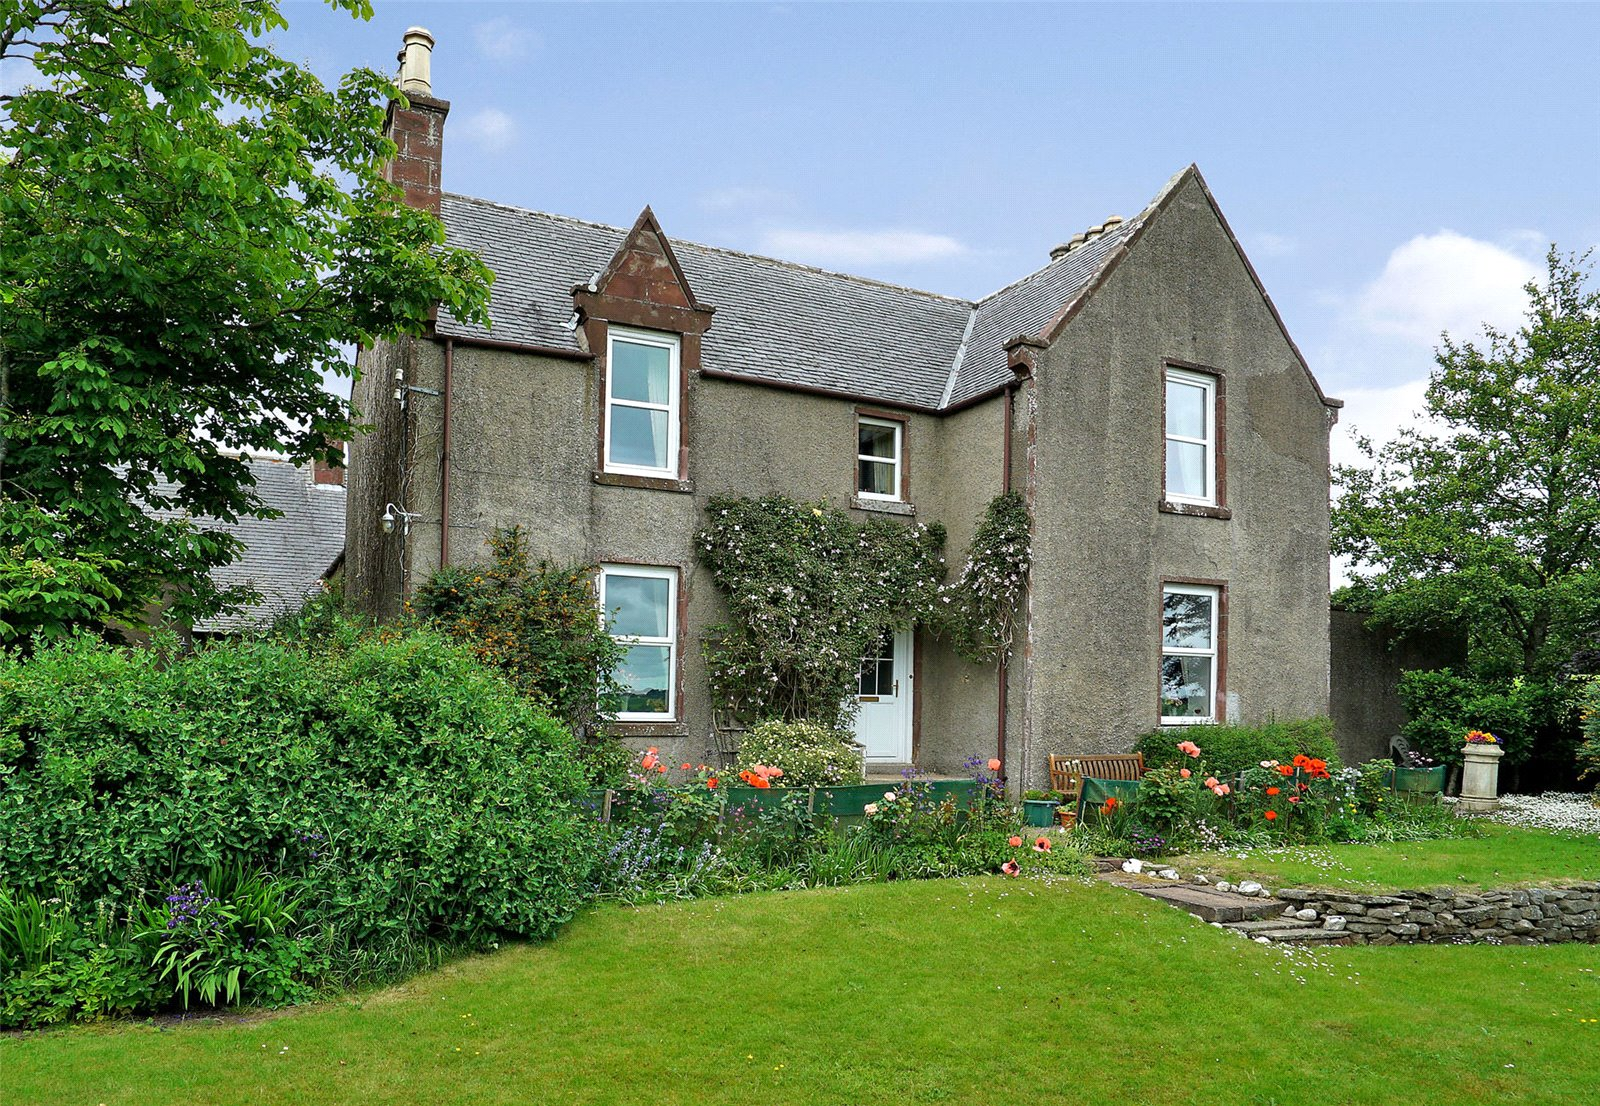 Four charming country homes located in and around Fyvie